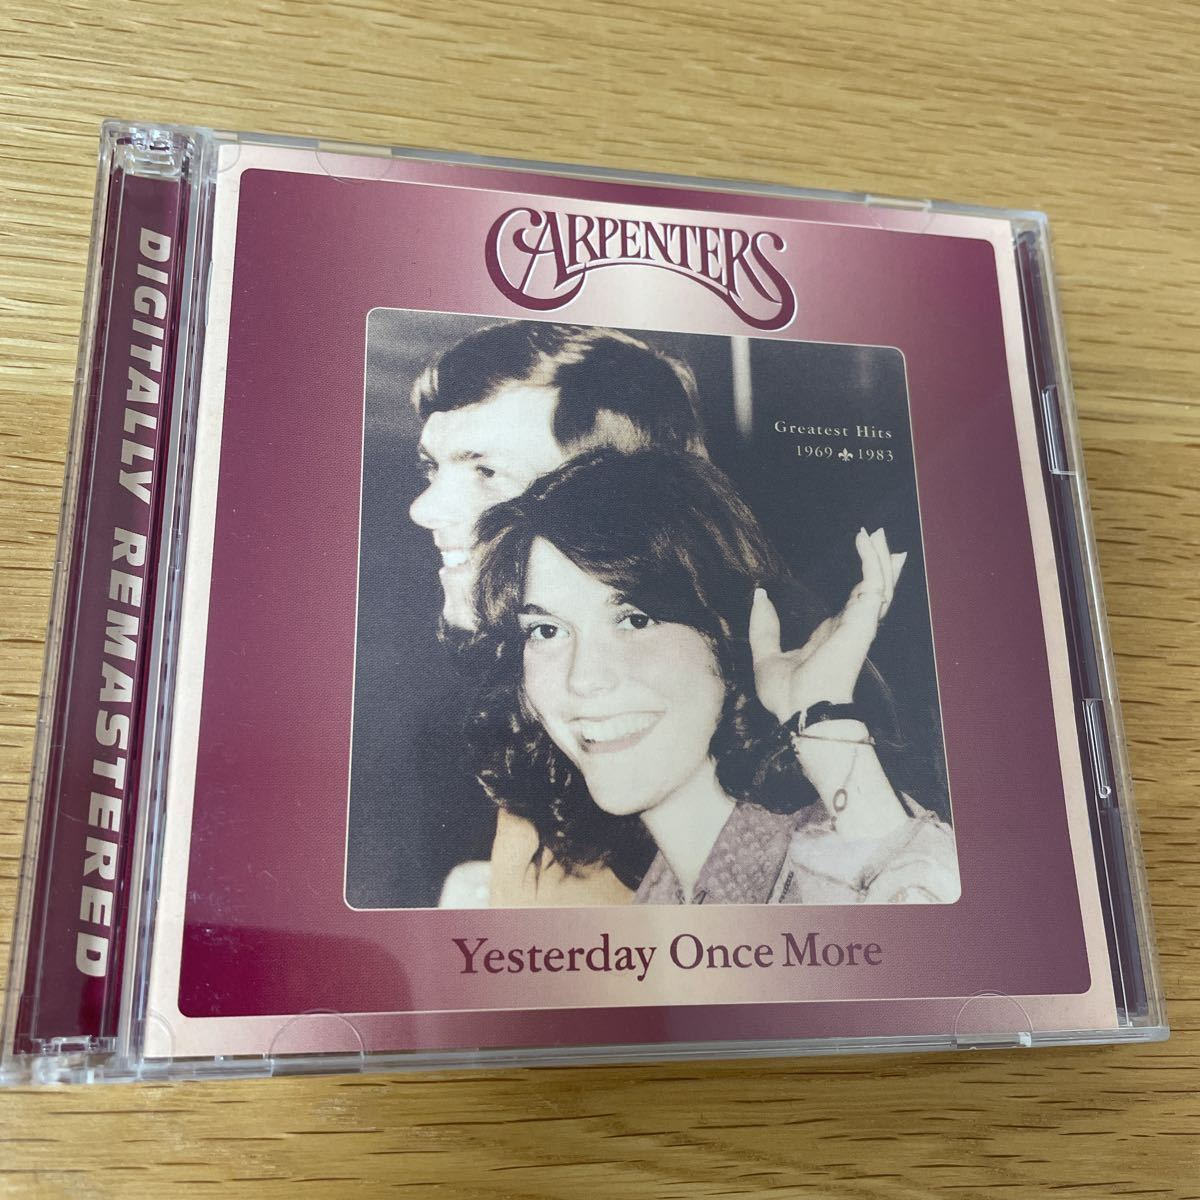 【2CD】CARPENTERS:Yesterday Once More/Digital Remastered [Greatest Hits1969-1983]:UICY-3246/7 《カーペンターズベスト盤》